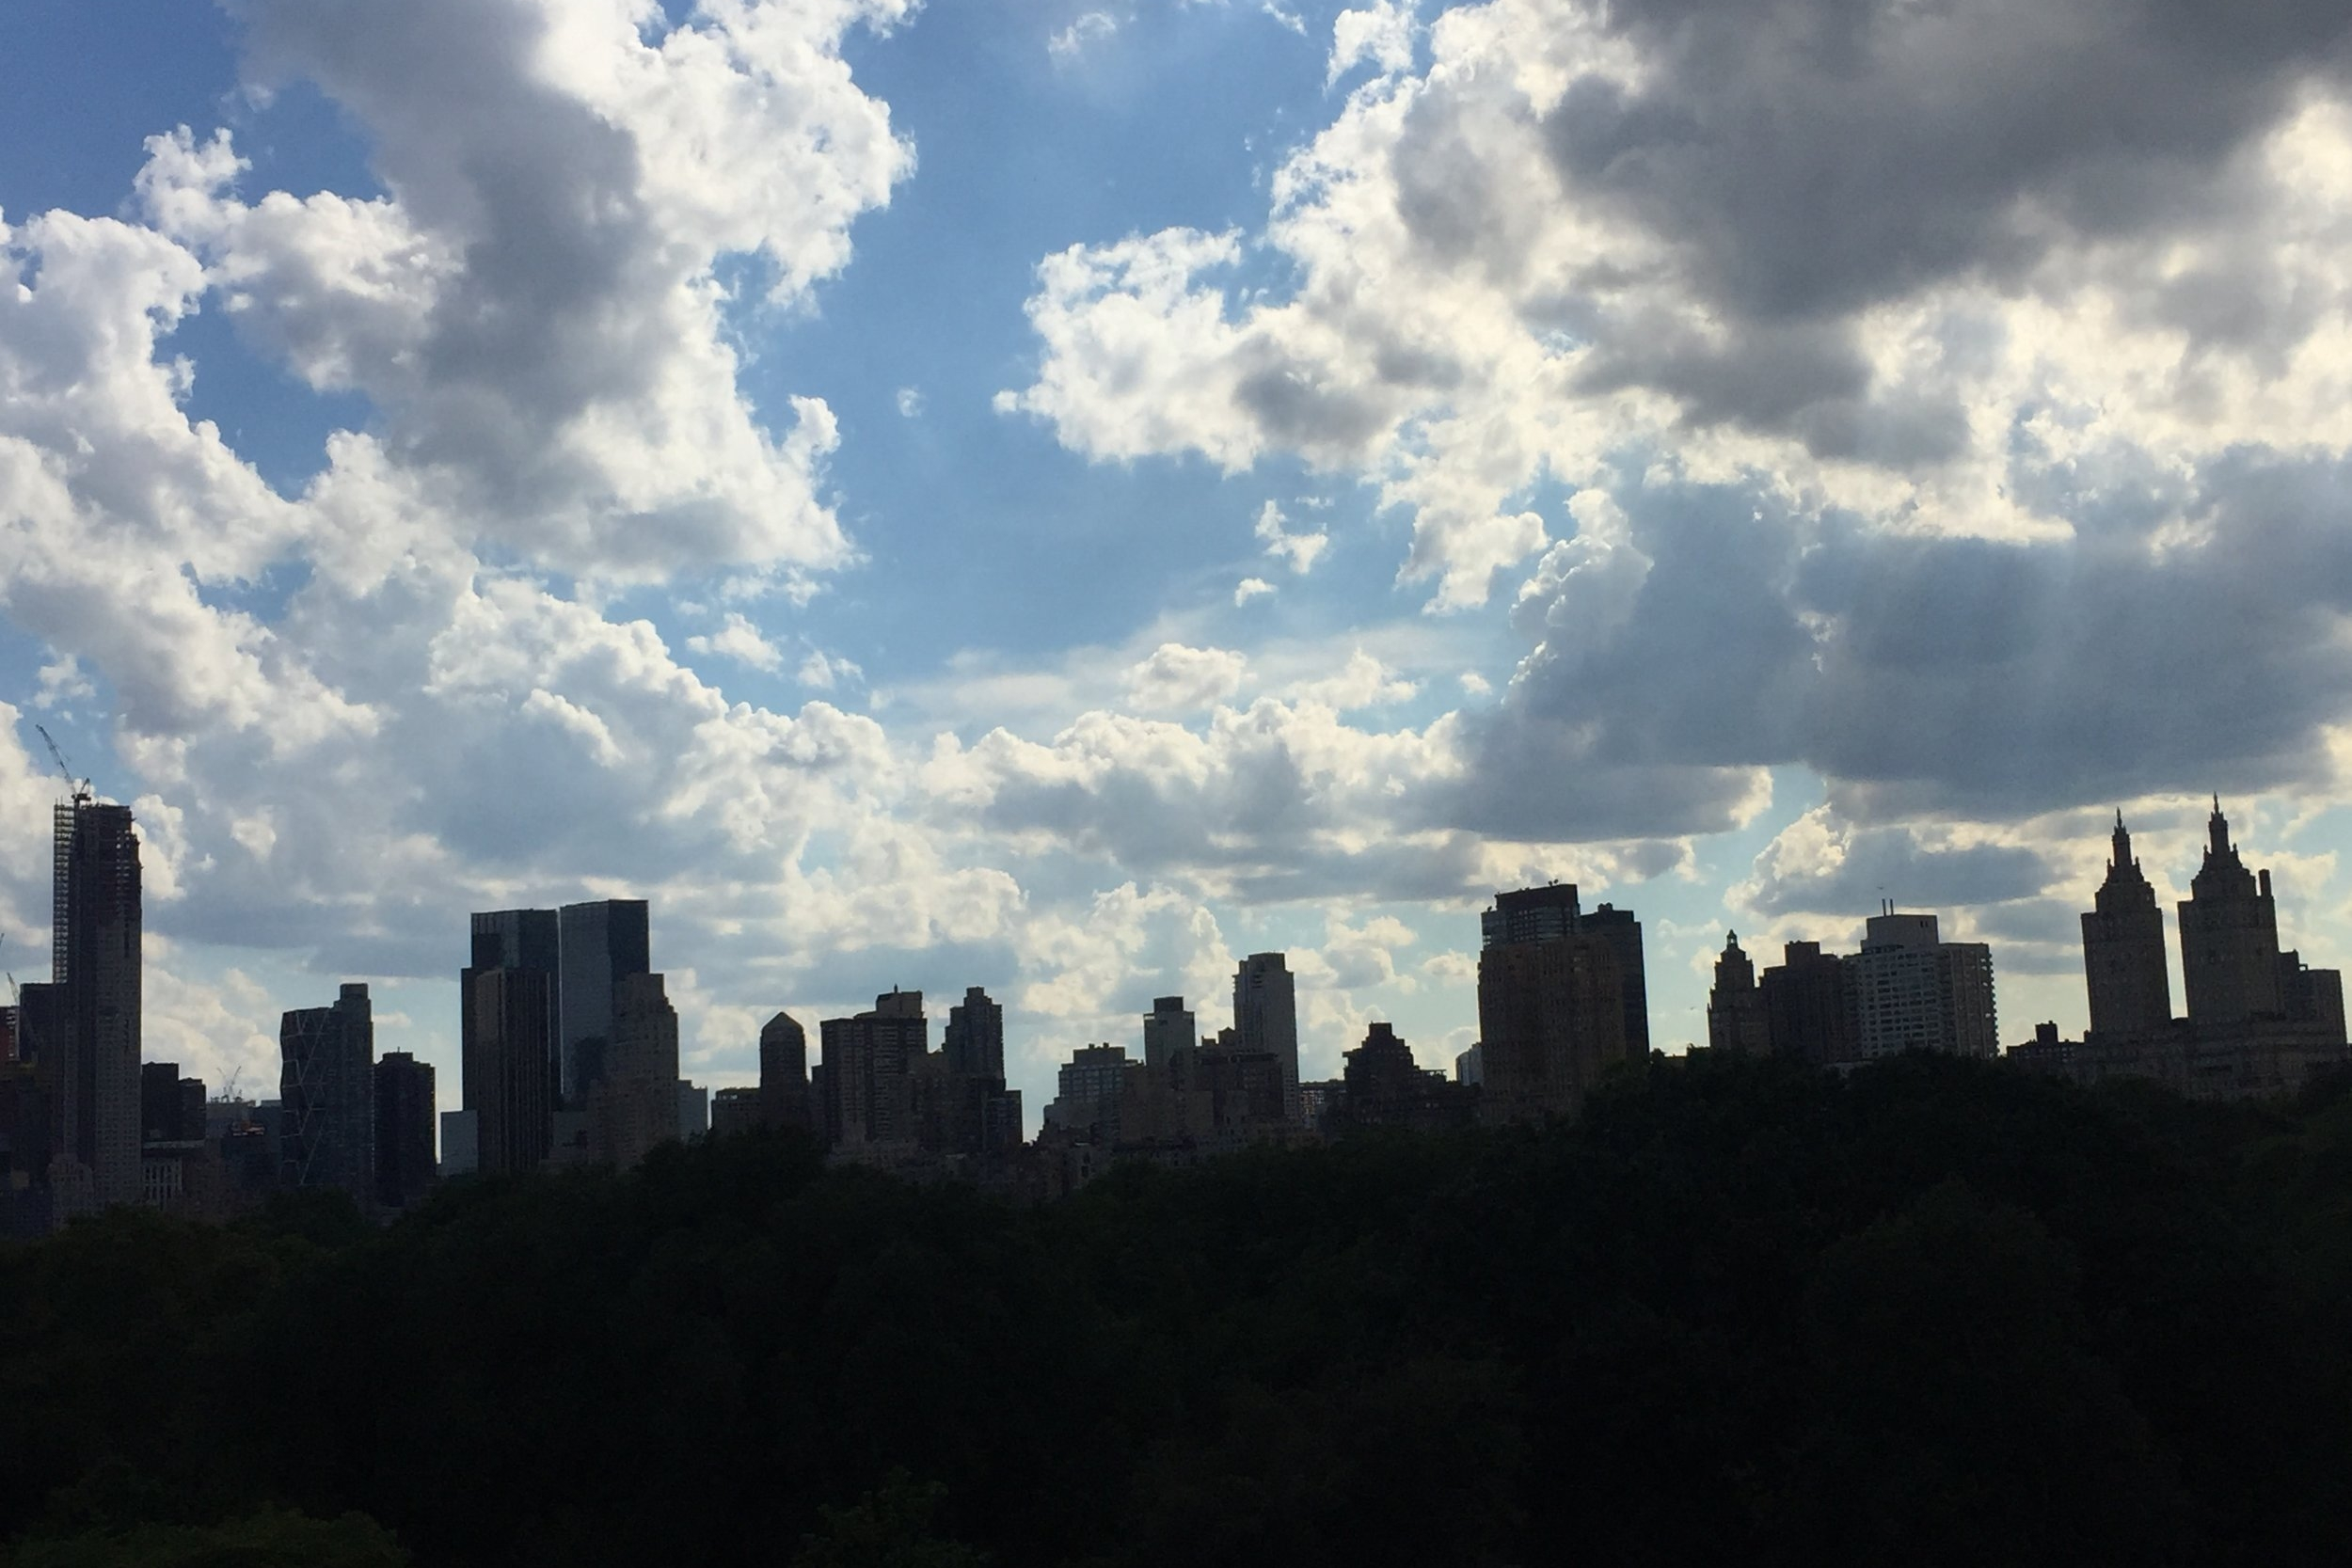 NYC skyline from the rooftop of the Metropolitan Museum of Art